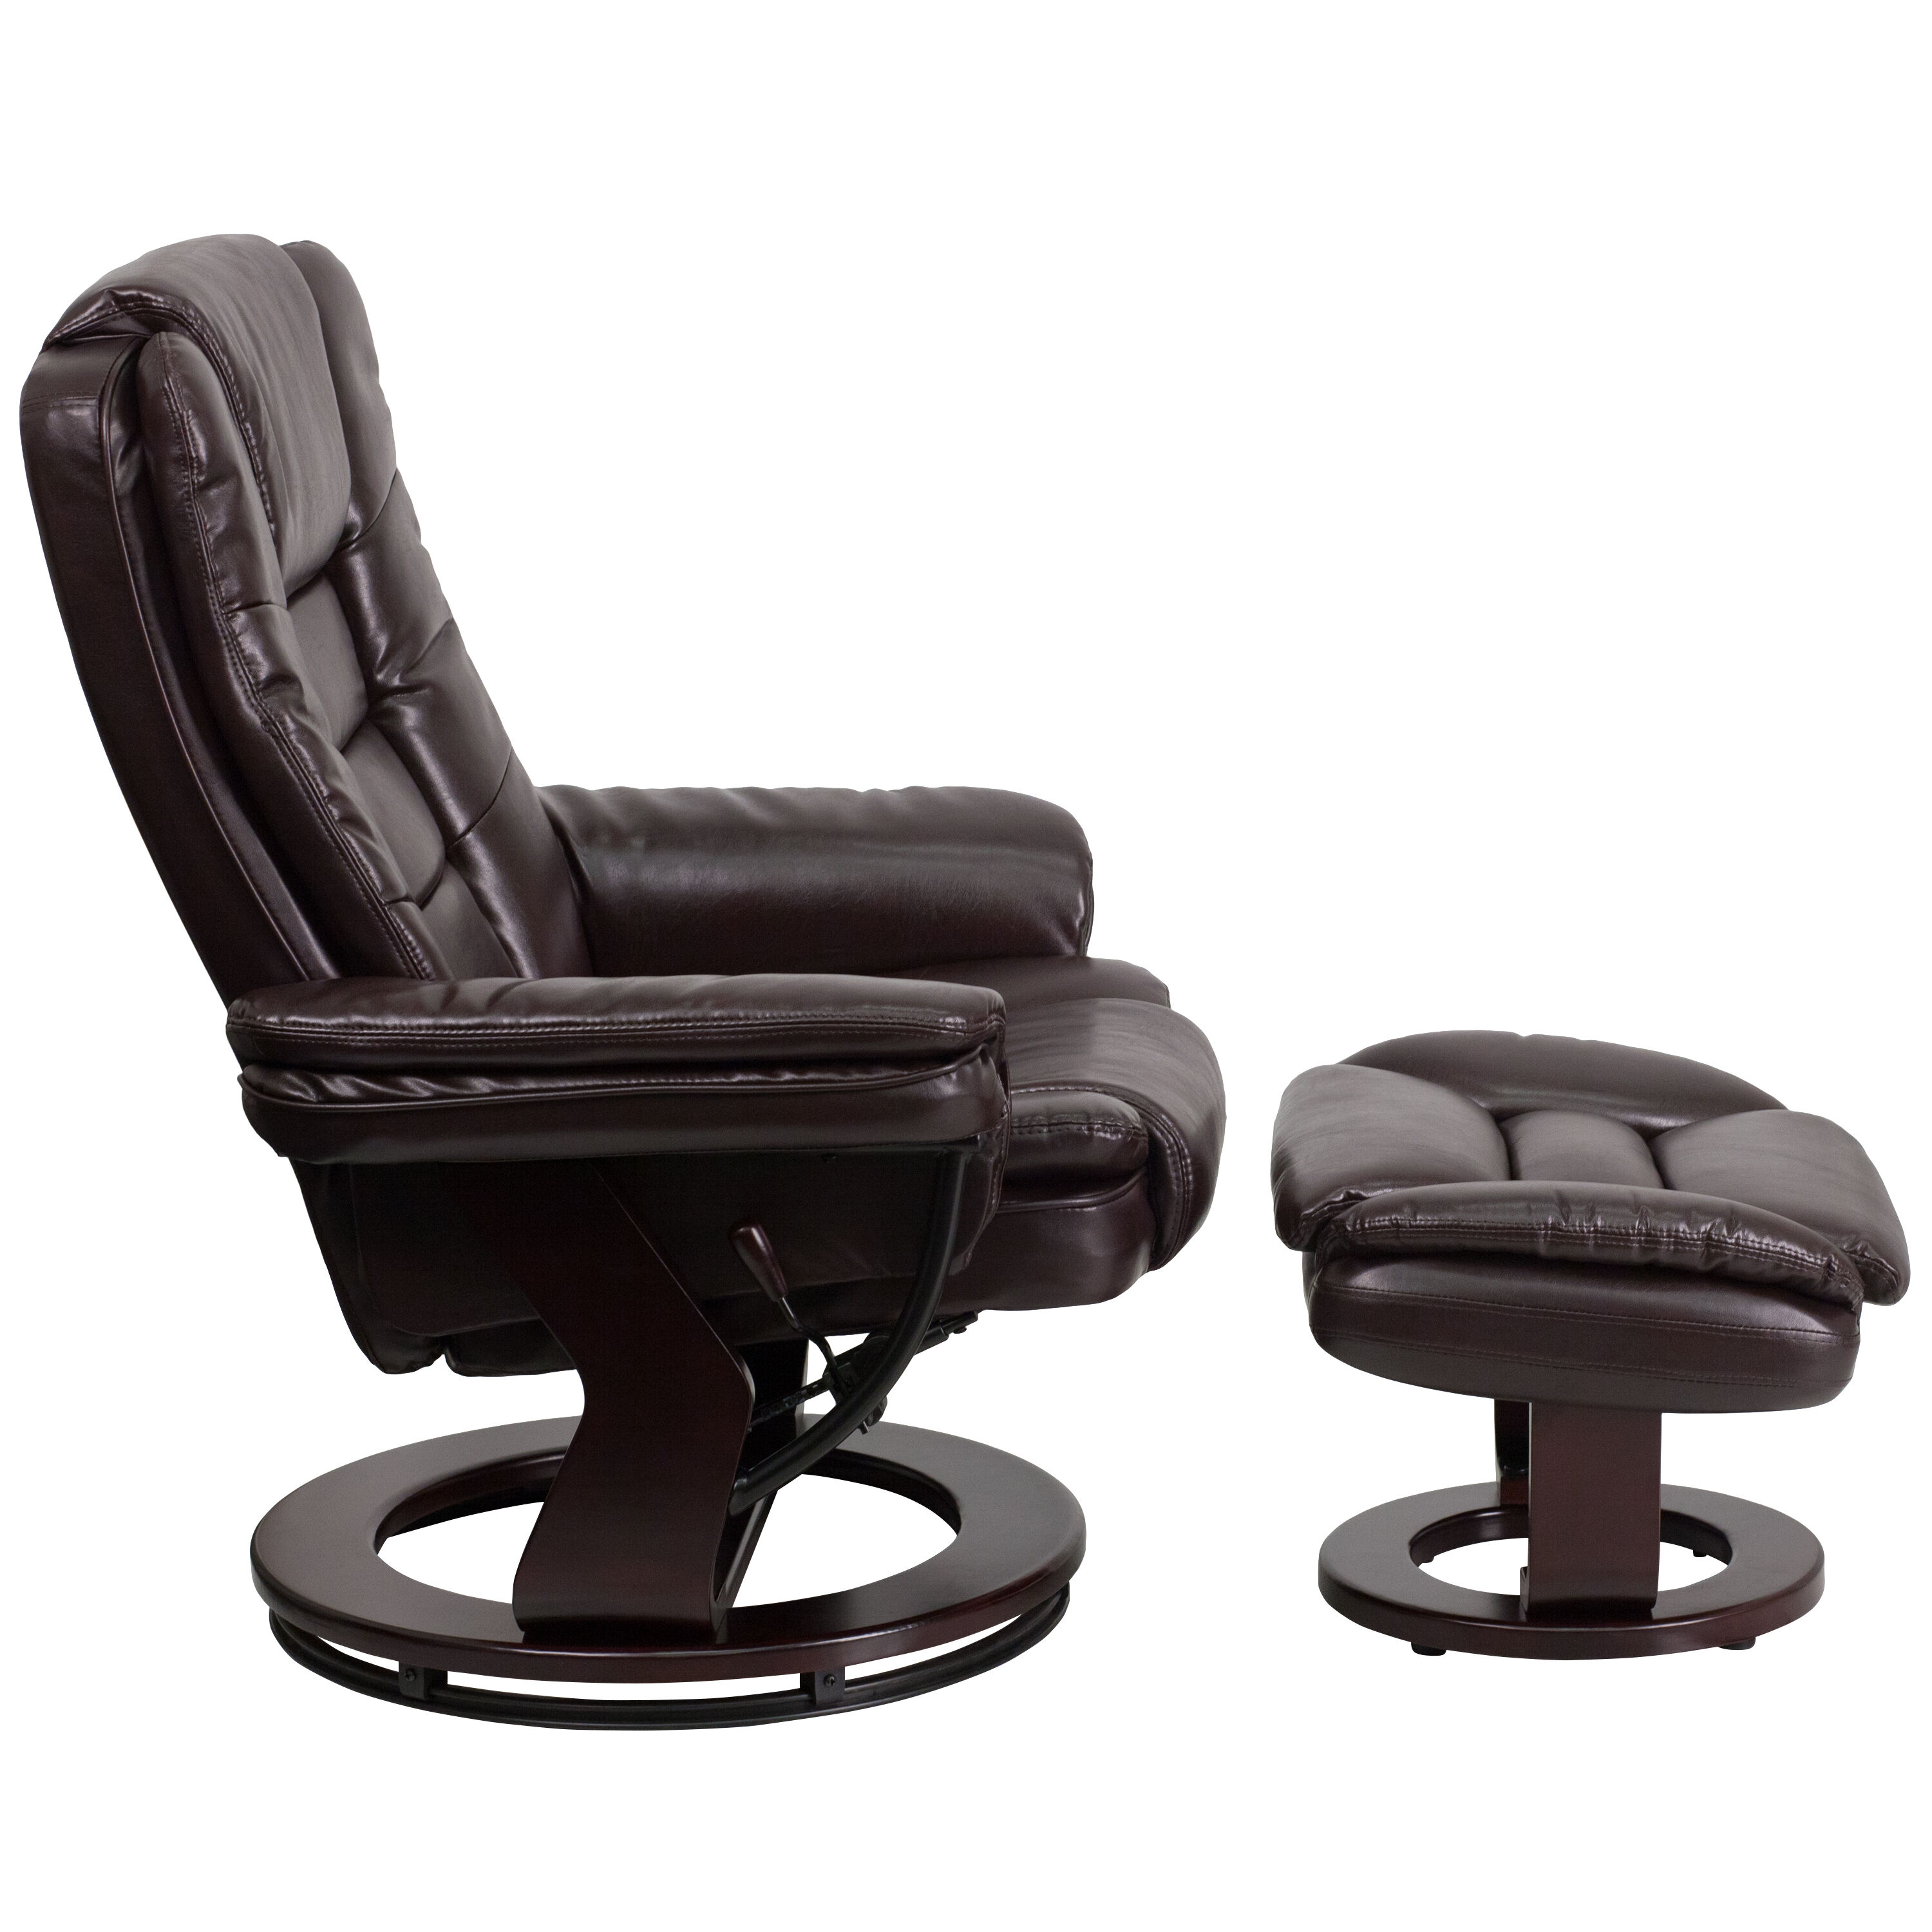 ... Our Contemporary Brown Leather Recliner And Ottoman With Swiveling  Mahogany Wood Base Is On Sale Now ...